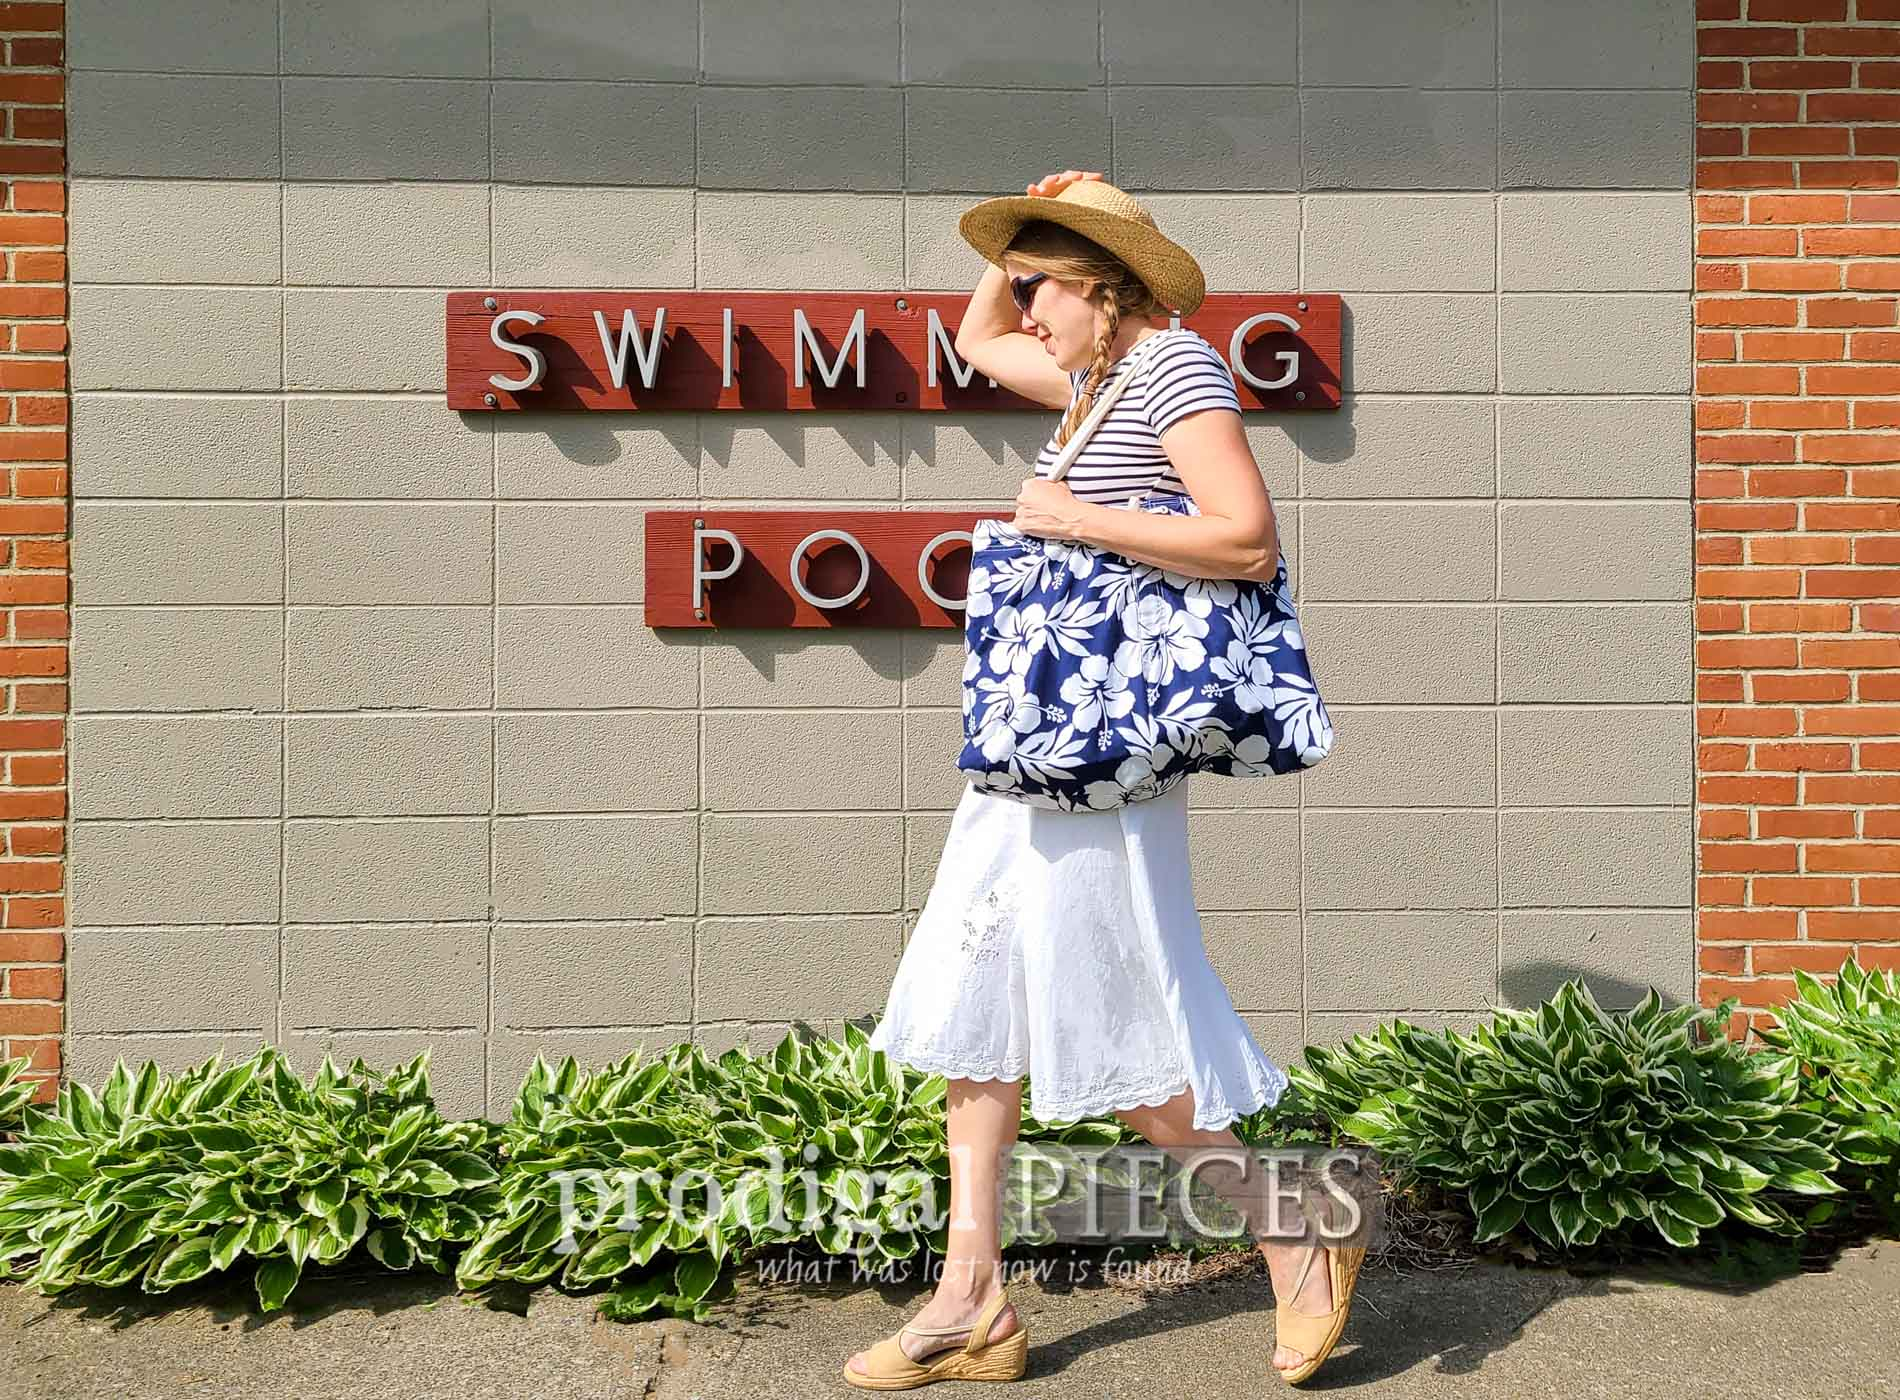 Featured Upcycled Swimsuit into Beach Bag for Refashion Fun by Larissa of Prodigal Pieces | prodigalpieces.com #prodigalpieces #refashion #upcycled #summer #swimming #diy